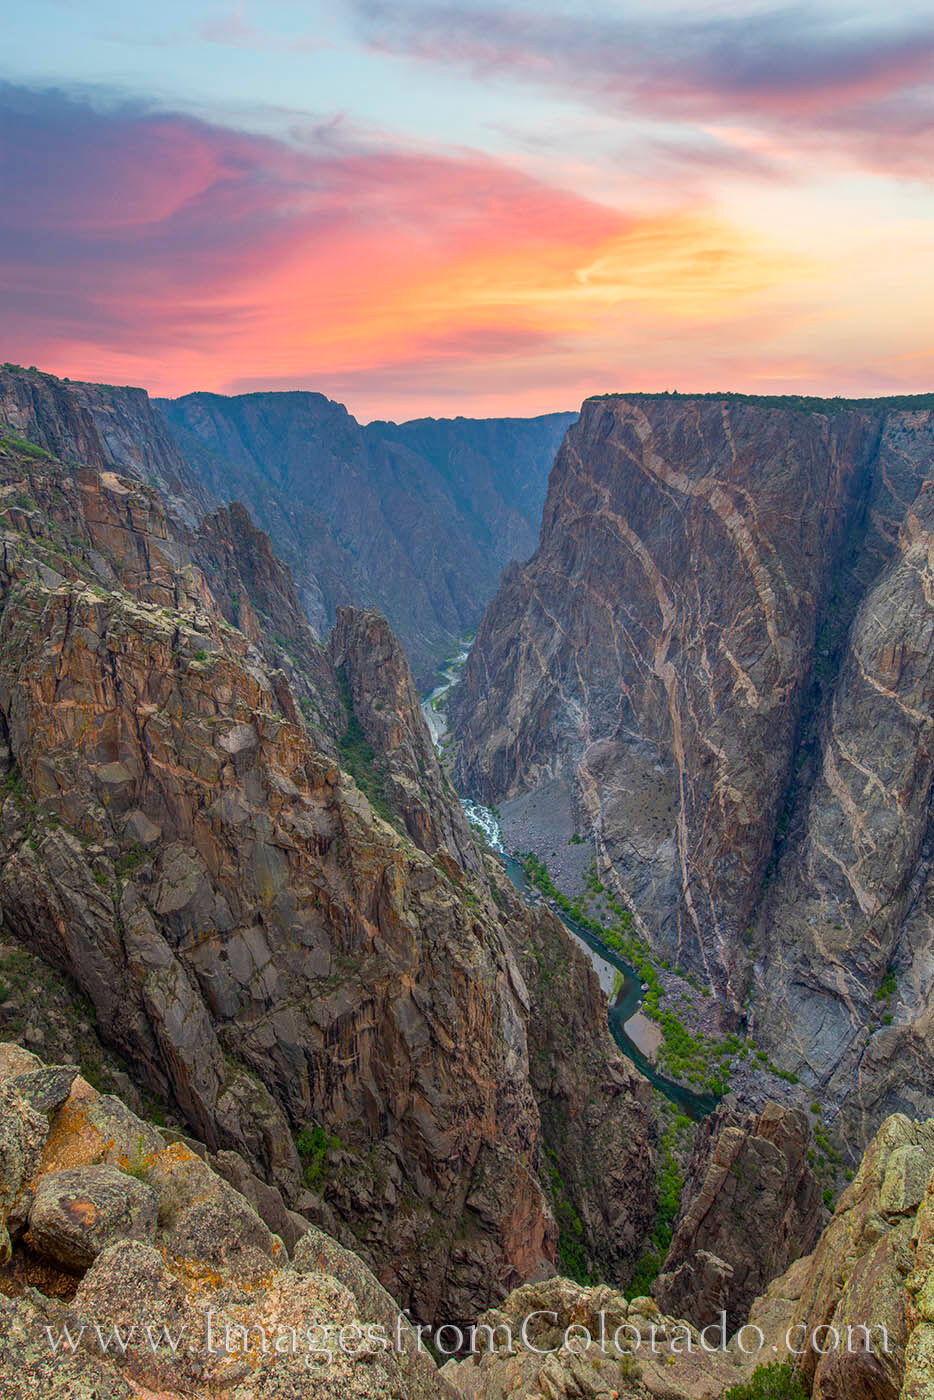 The rocks of gneiss and pegmatite that form the Painted Walls of the Black Canyon are nearly 2 billion years old. As the tallest...